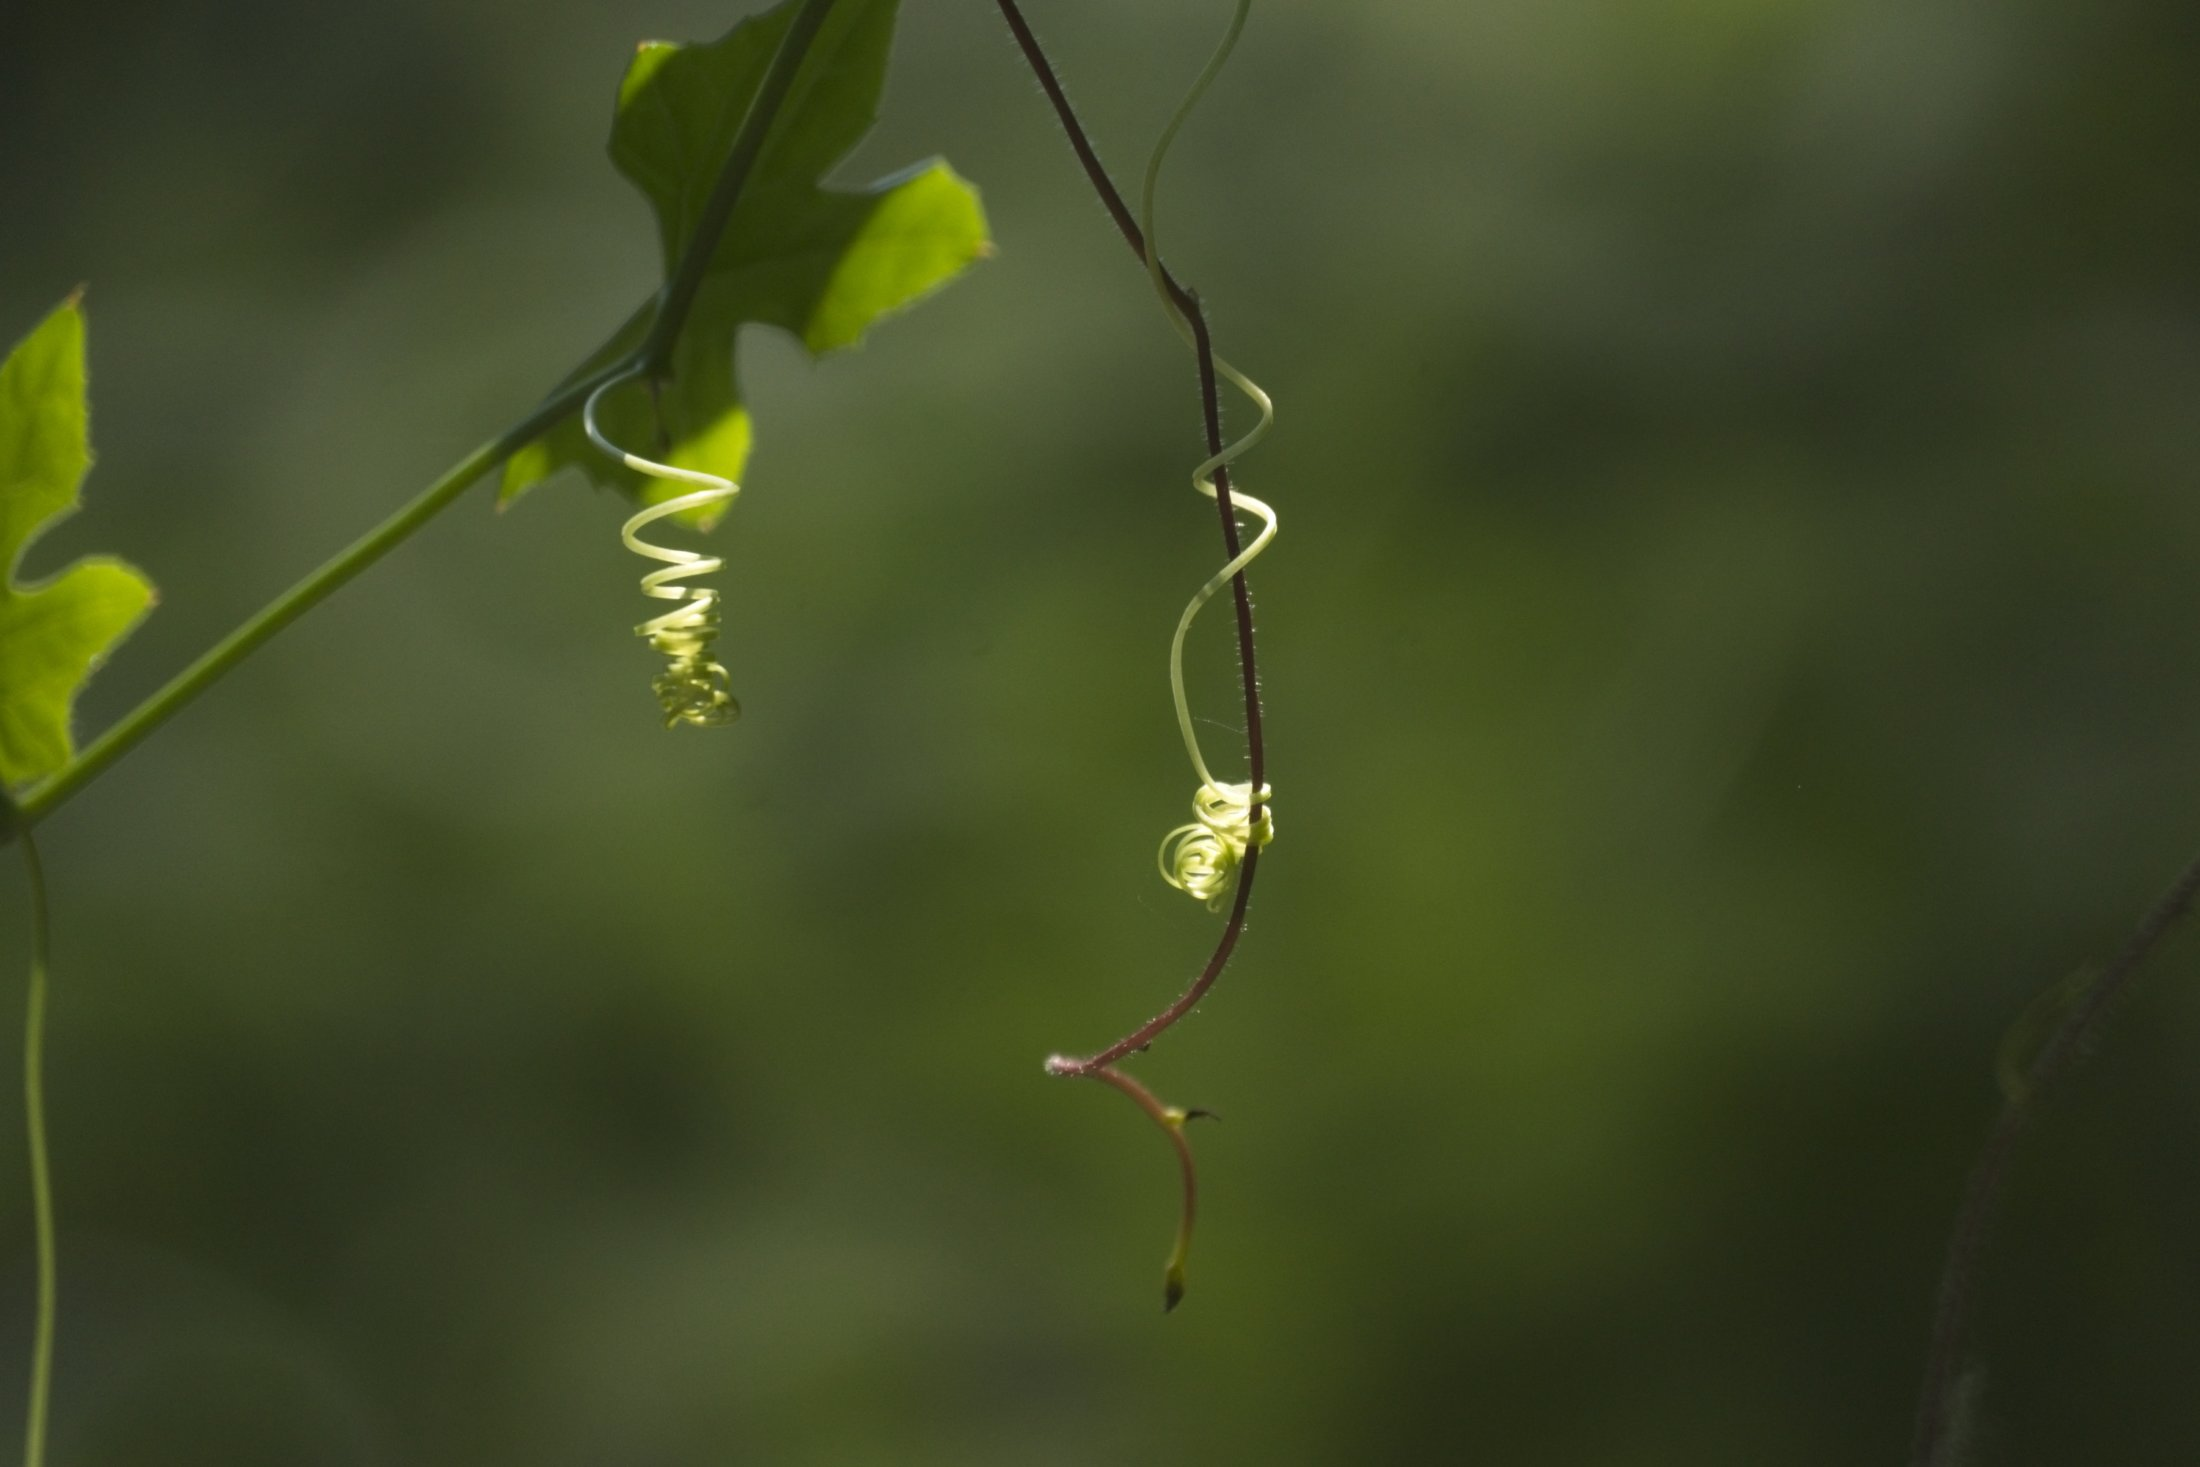 Creeper tendril, coiled up